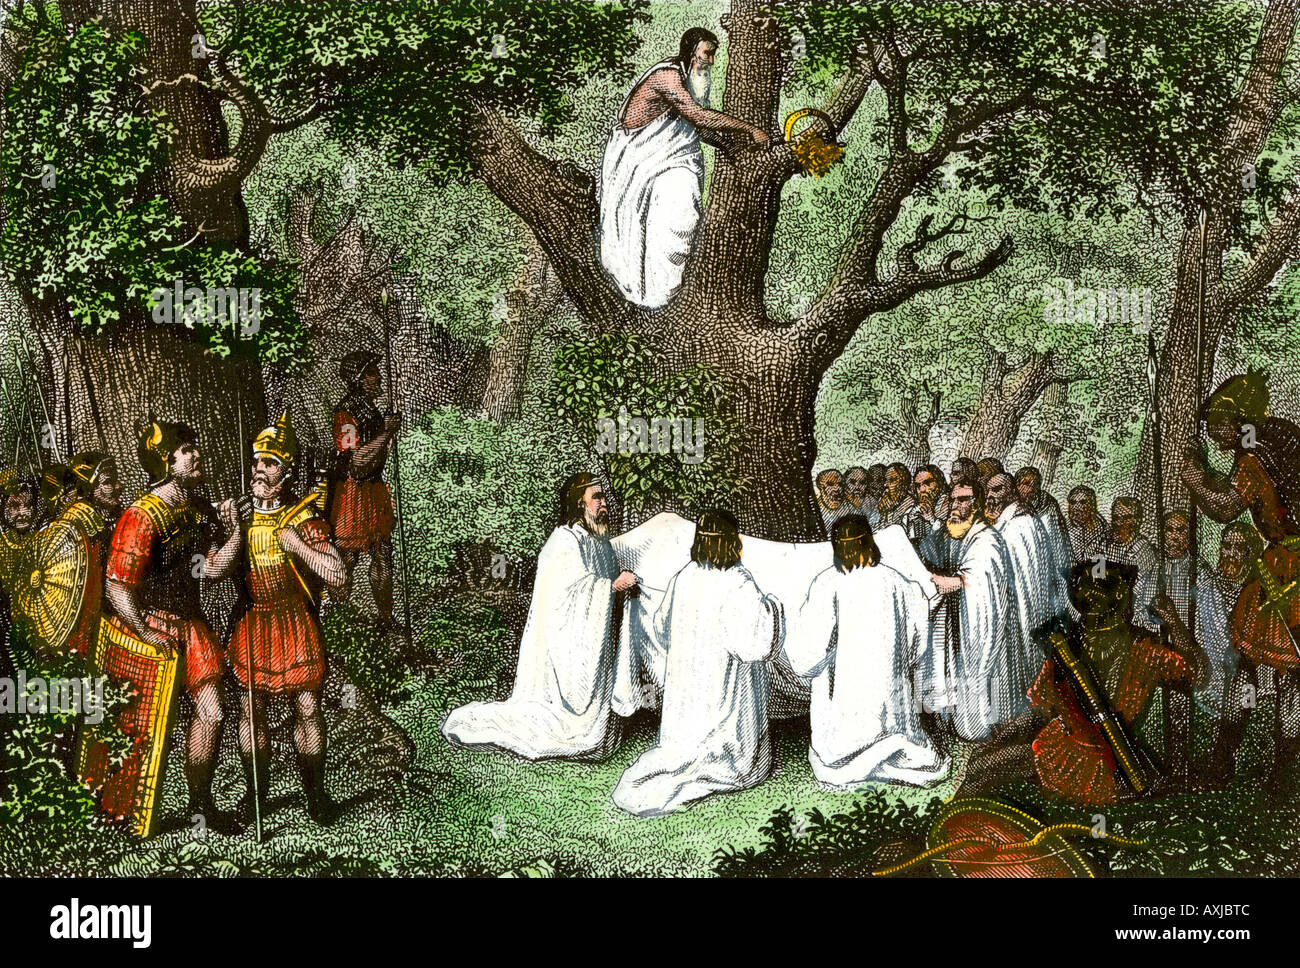 Druids cutting mistletoe in the forest watched by Roman soldiers. Hand-colored steel engraving - Stock Image